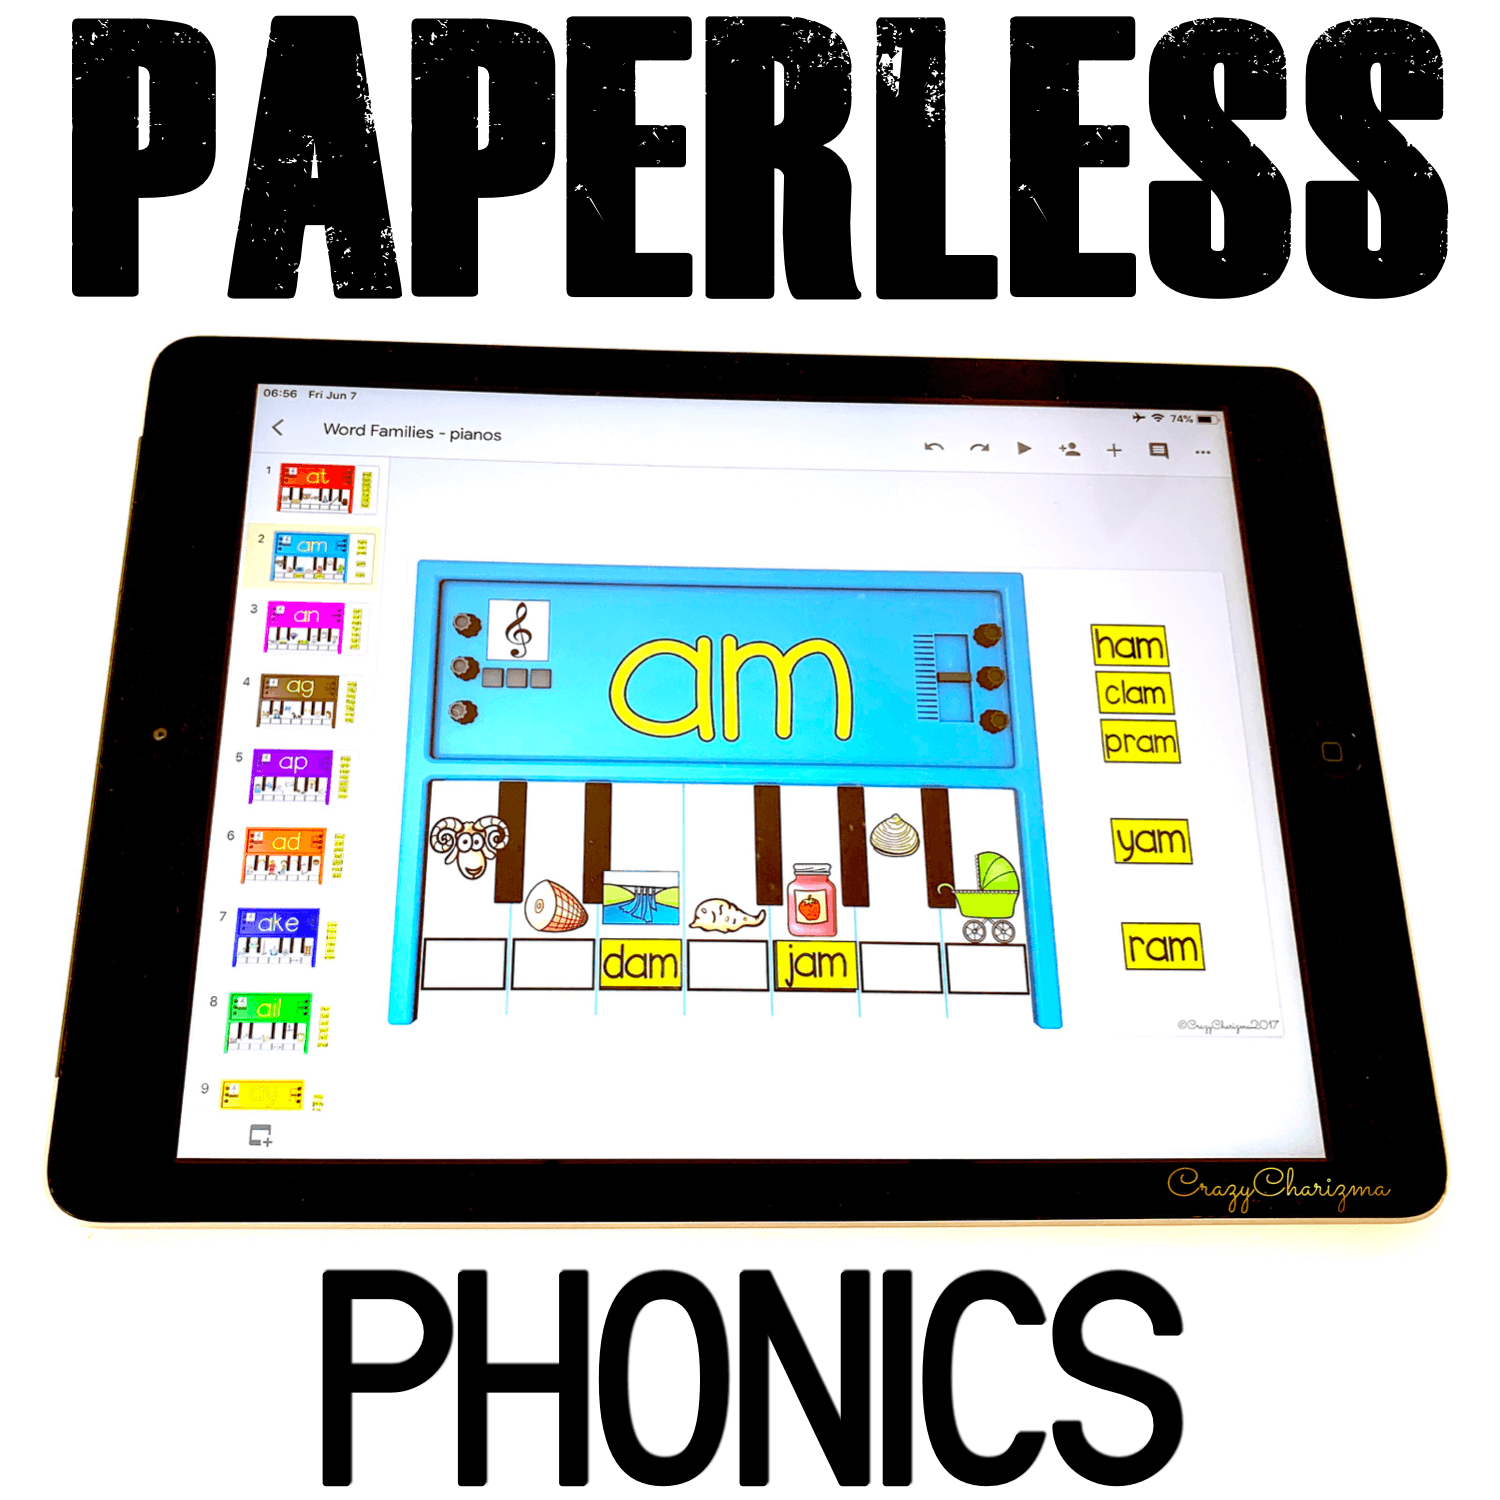 Google Classroom Activities for Kindergarten. Do you need to practice phonics on iPads, Chromebooks or smartboards? Use these activities for Google Classroom™. The games are perfect for 1:1 work, during your literacy block, daily 5, guided reading, spelling, RTI, or during literacy centers. #CrazyCharizma #GoogleClassroom #GoogleClassroomKindergarten #HandsOnActivitiesForKids #PaperlessClassroomElementary #SightWordsActivities